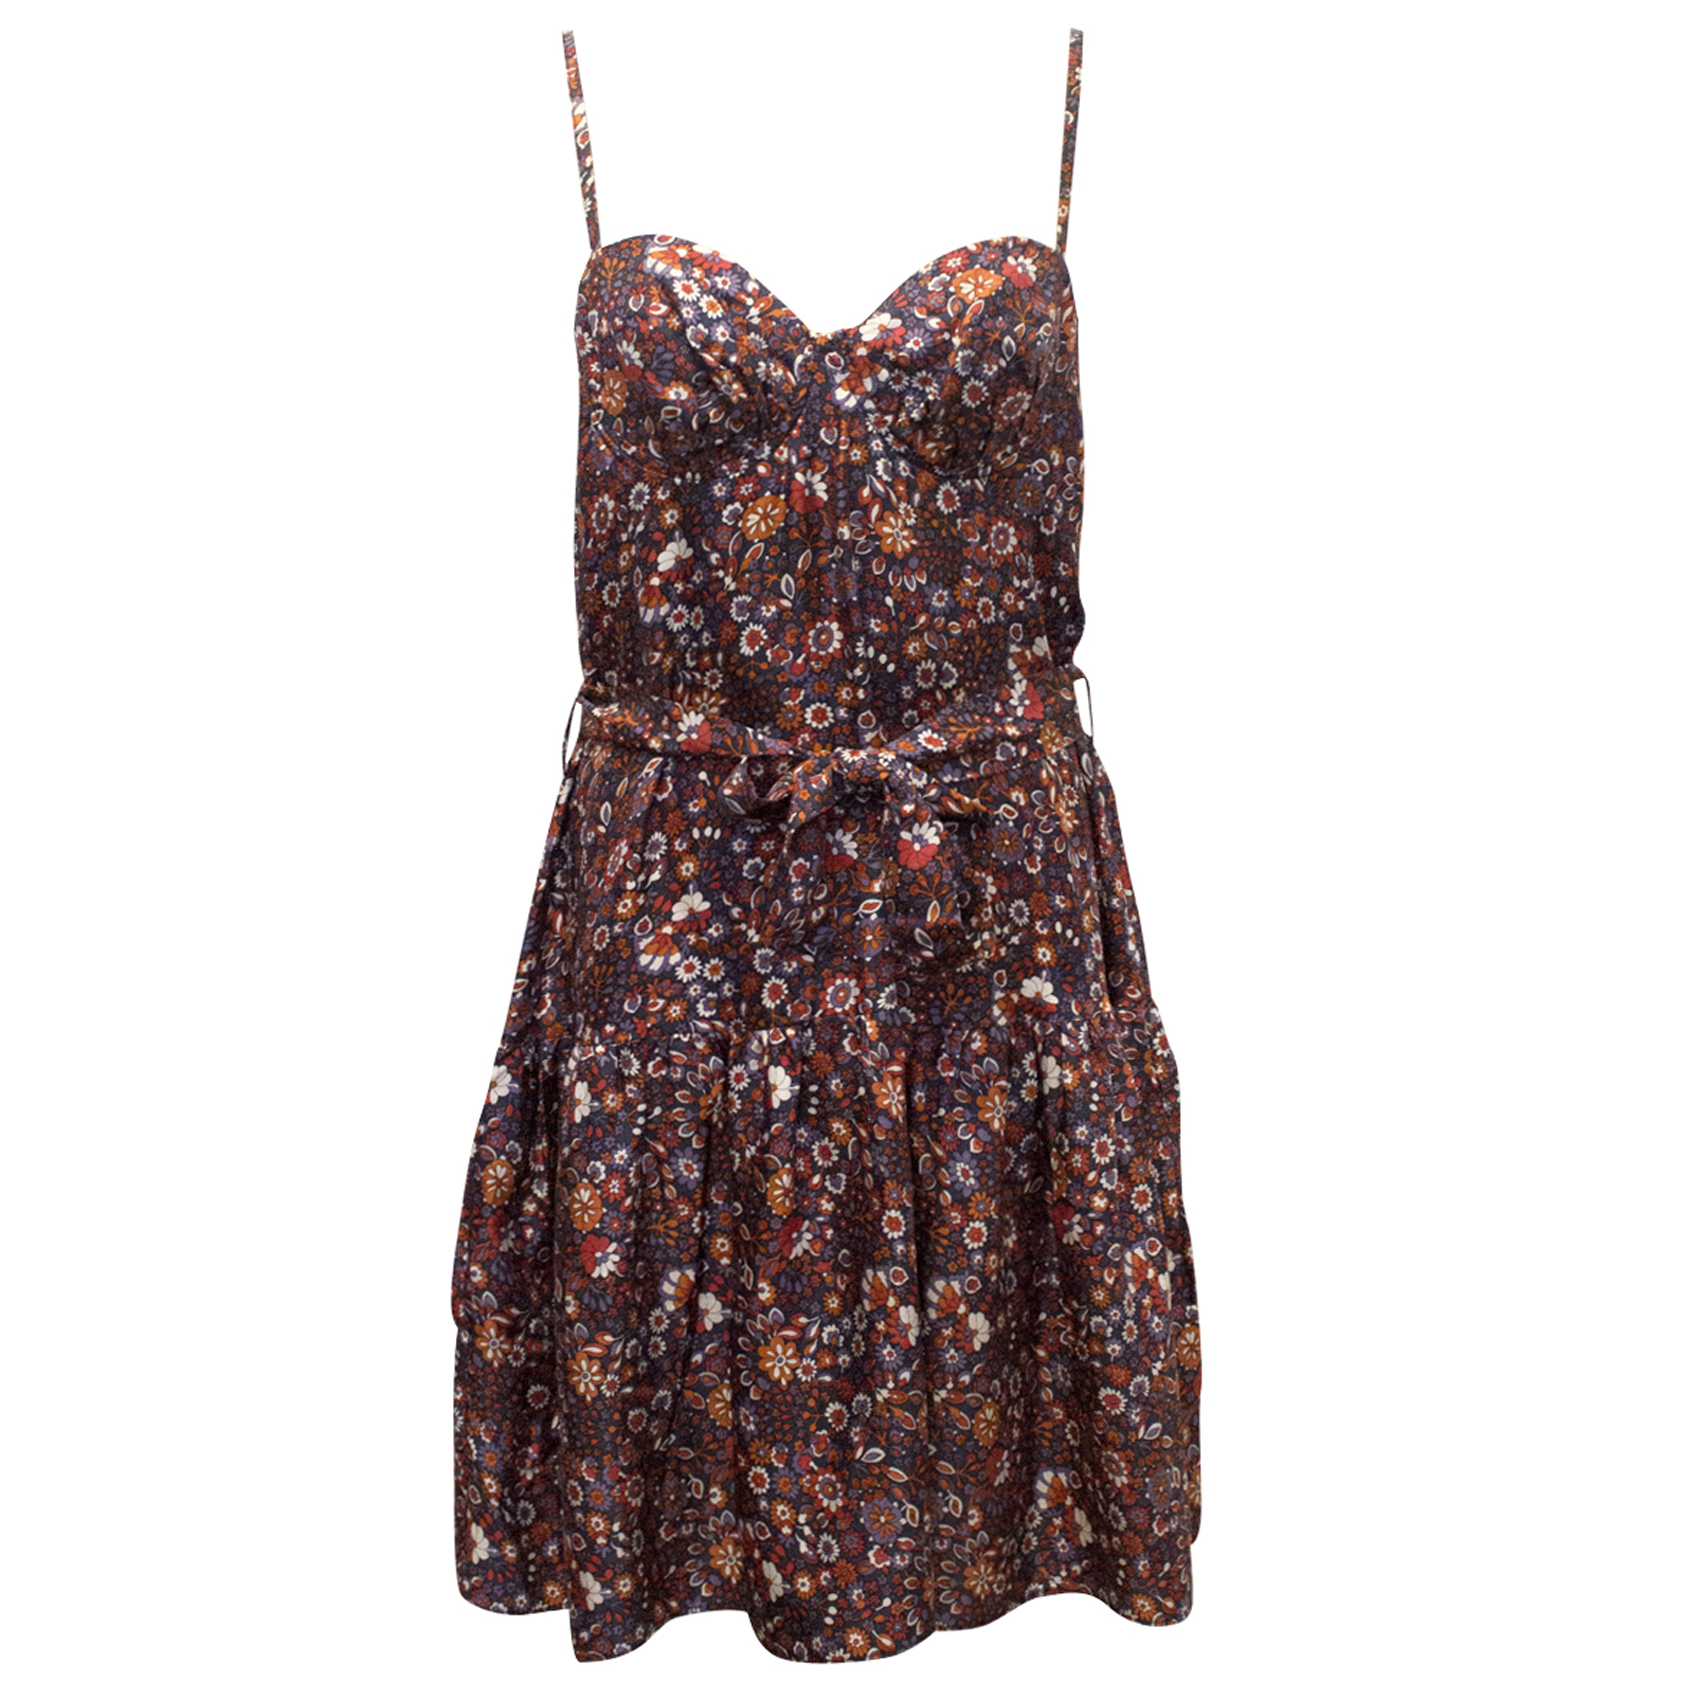 Zimmermann Silk Floral Bustier Style Dress with Waist Tie